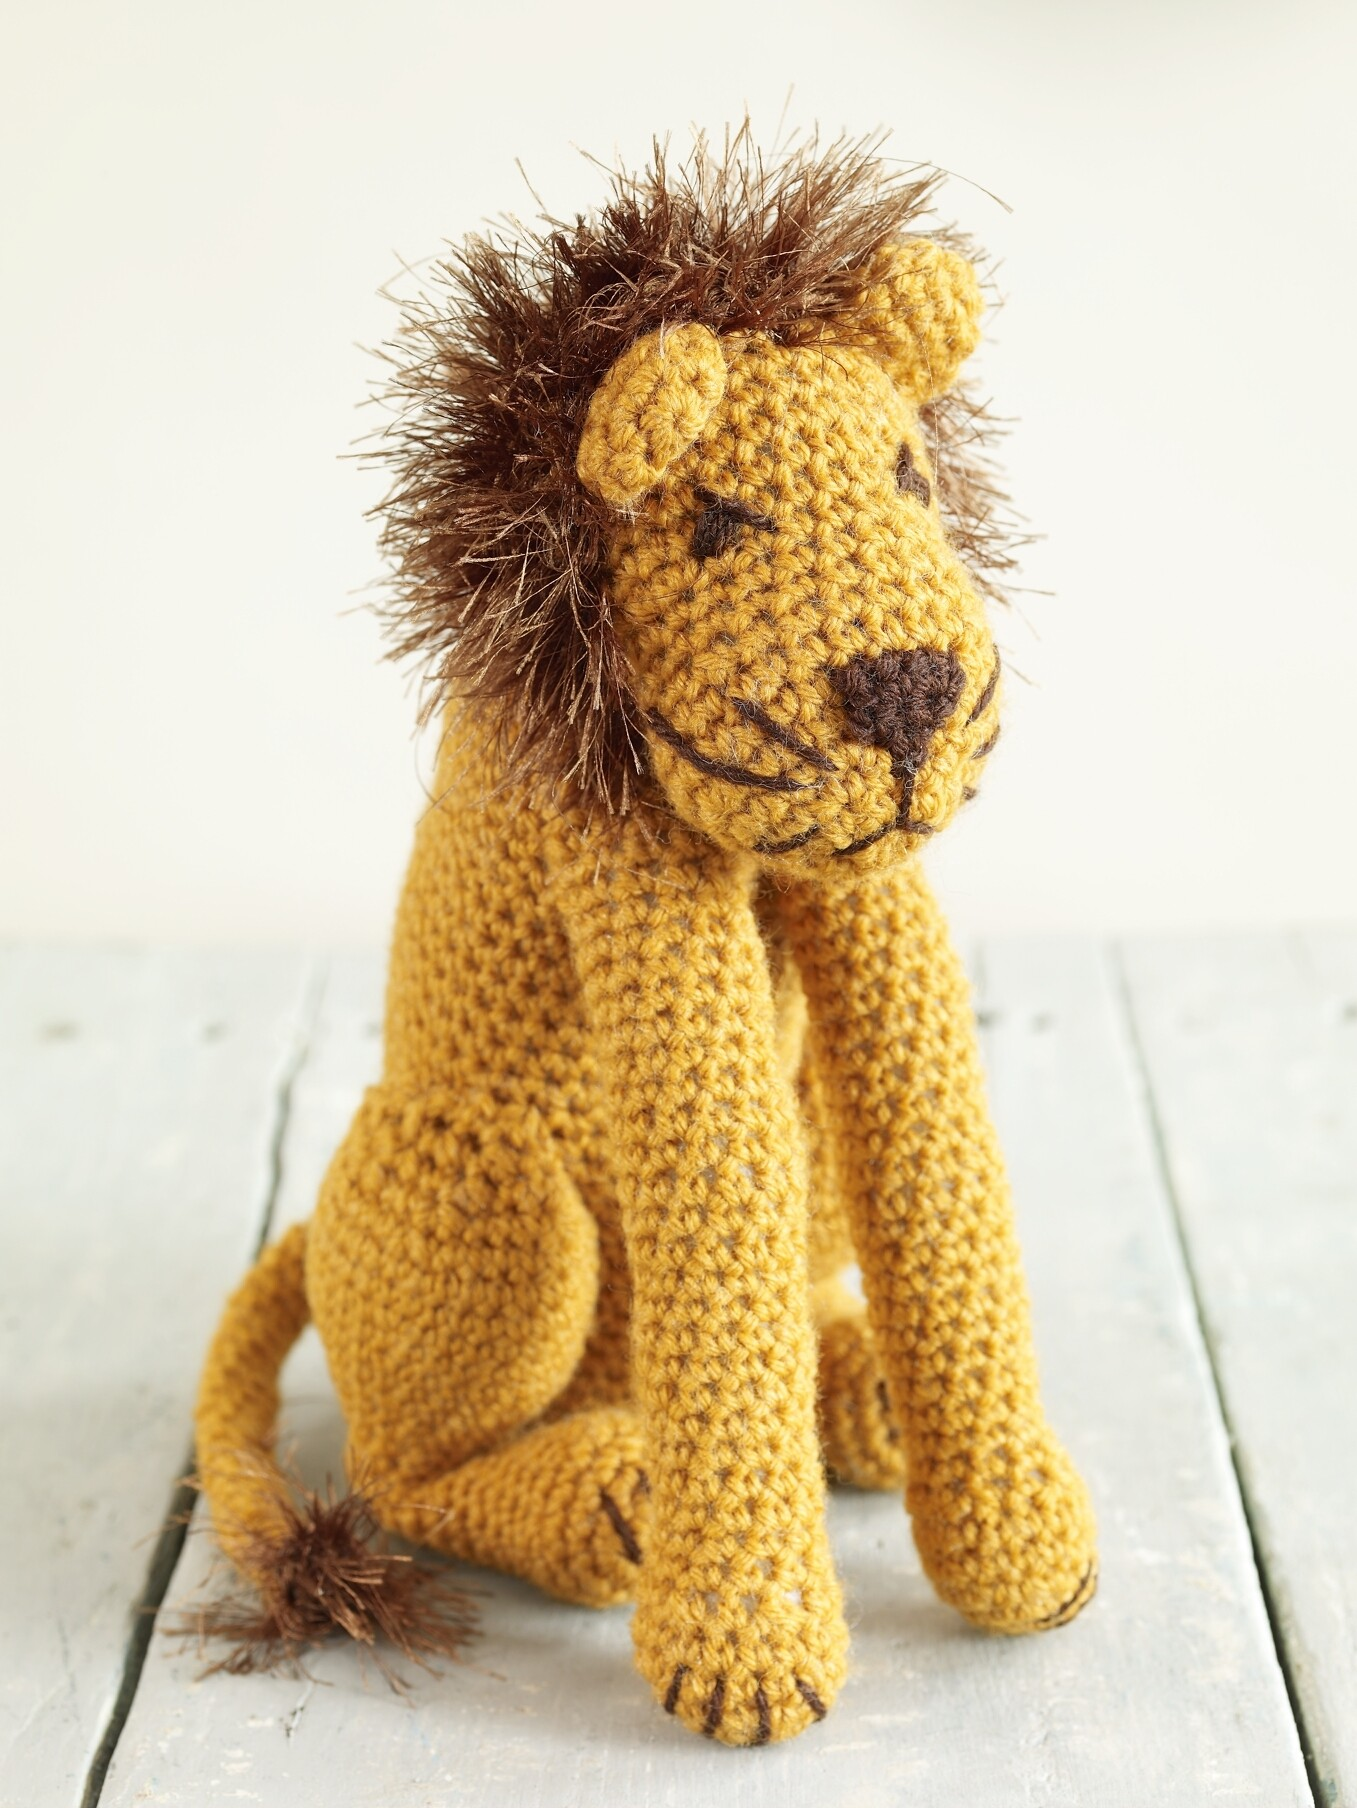 Lions to Crochet - 11 free patterns - Grandmother's ...